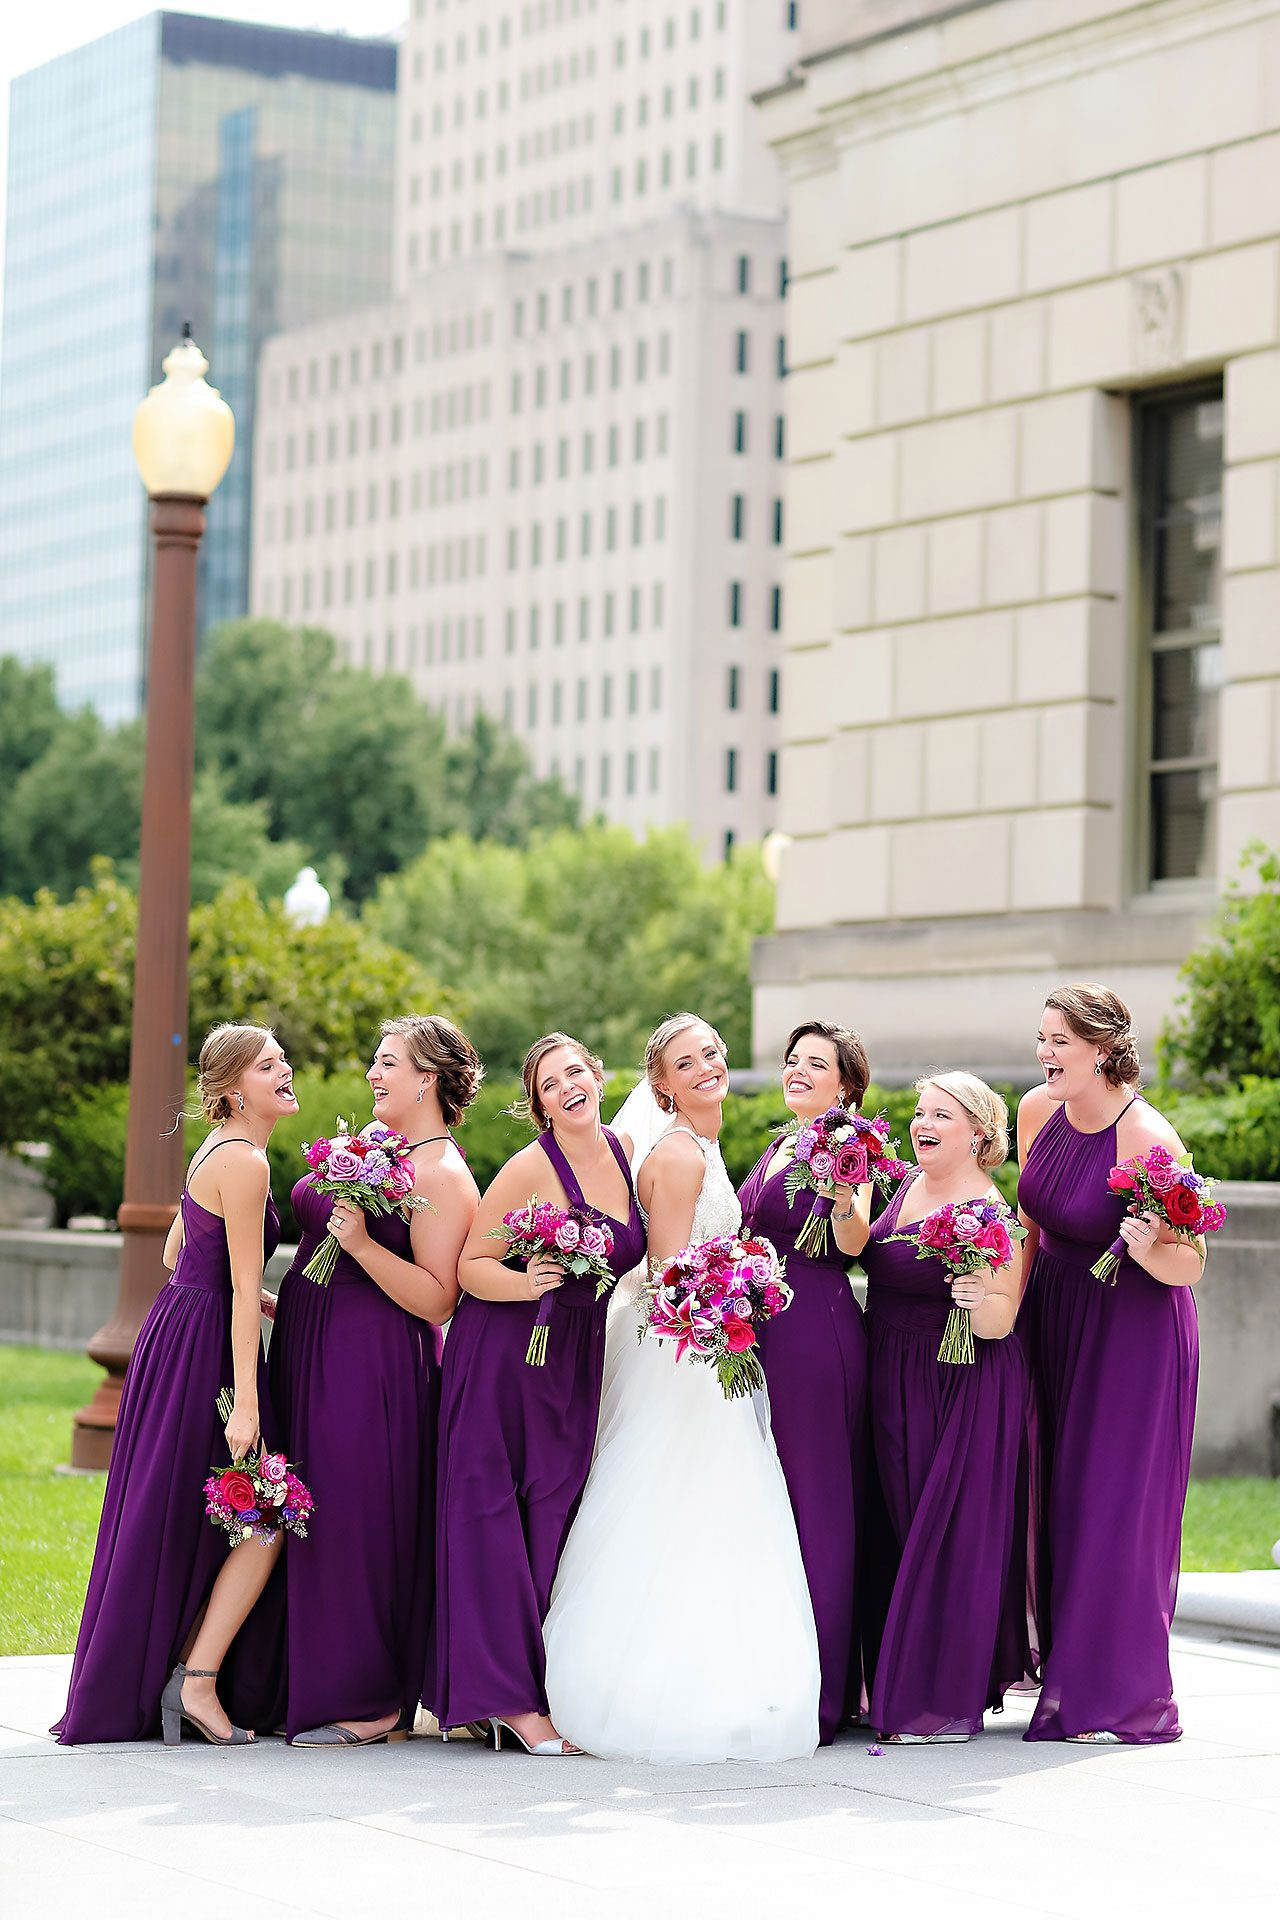 Serra Alex Regions Tower Indianapolis Wedding 081 watermarked